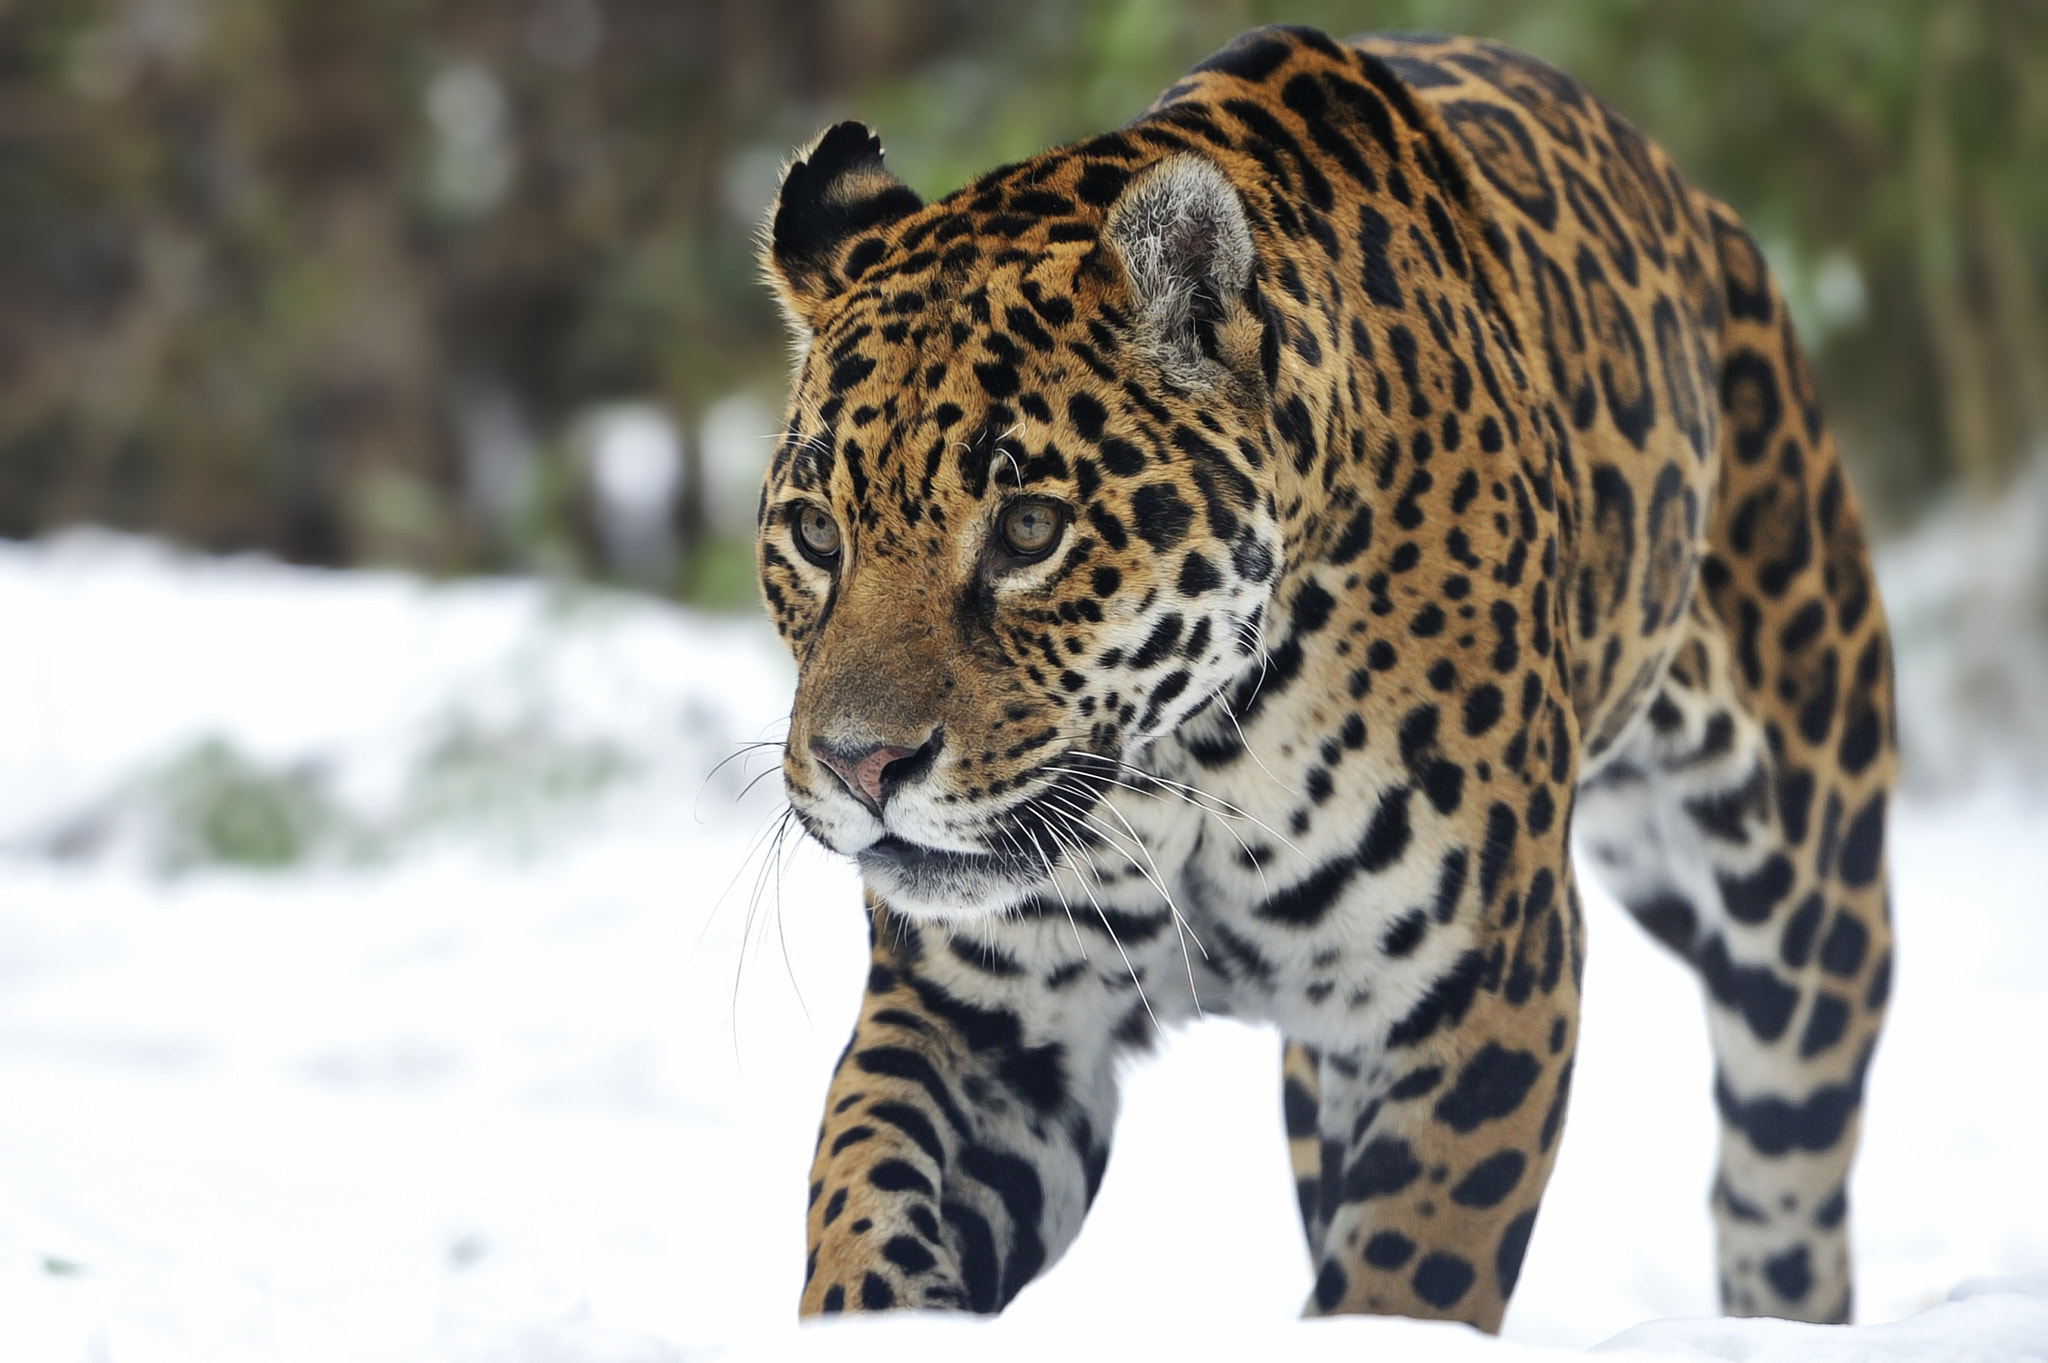 Photograph Deep Snow Jaguar by Josef Gelernter on 500px